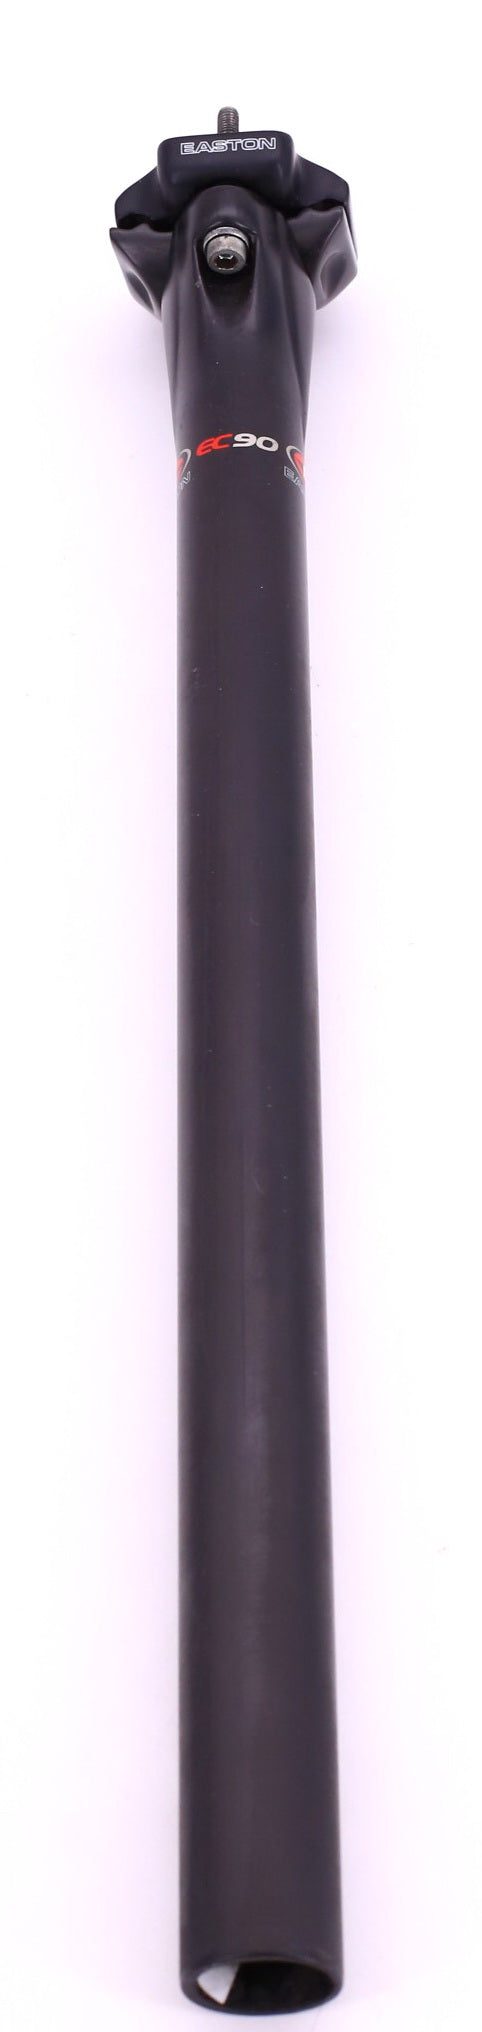 Easton EC90 Seatpost 27.2 x 400mm Carbon 0mm Setback Black